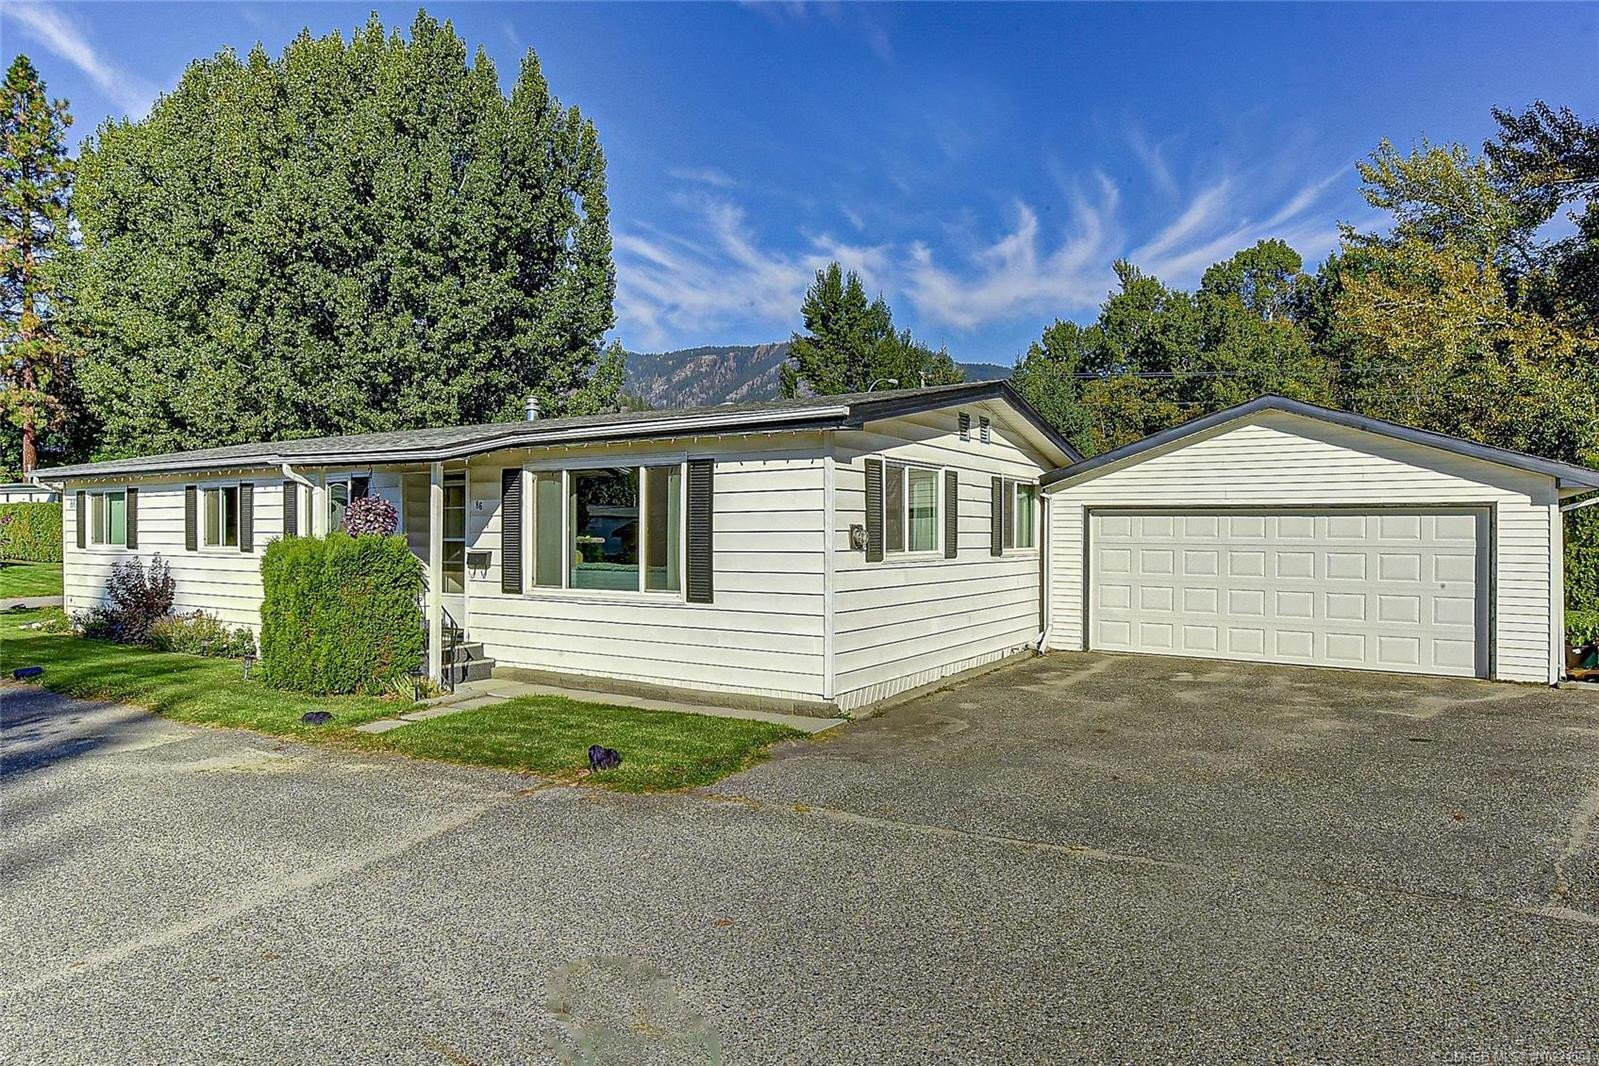 Home for sale at 1929 Highway 97 Hy South Unit 86 West Kelowna British Columbia - MLS: 10221554